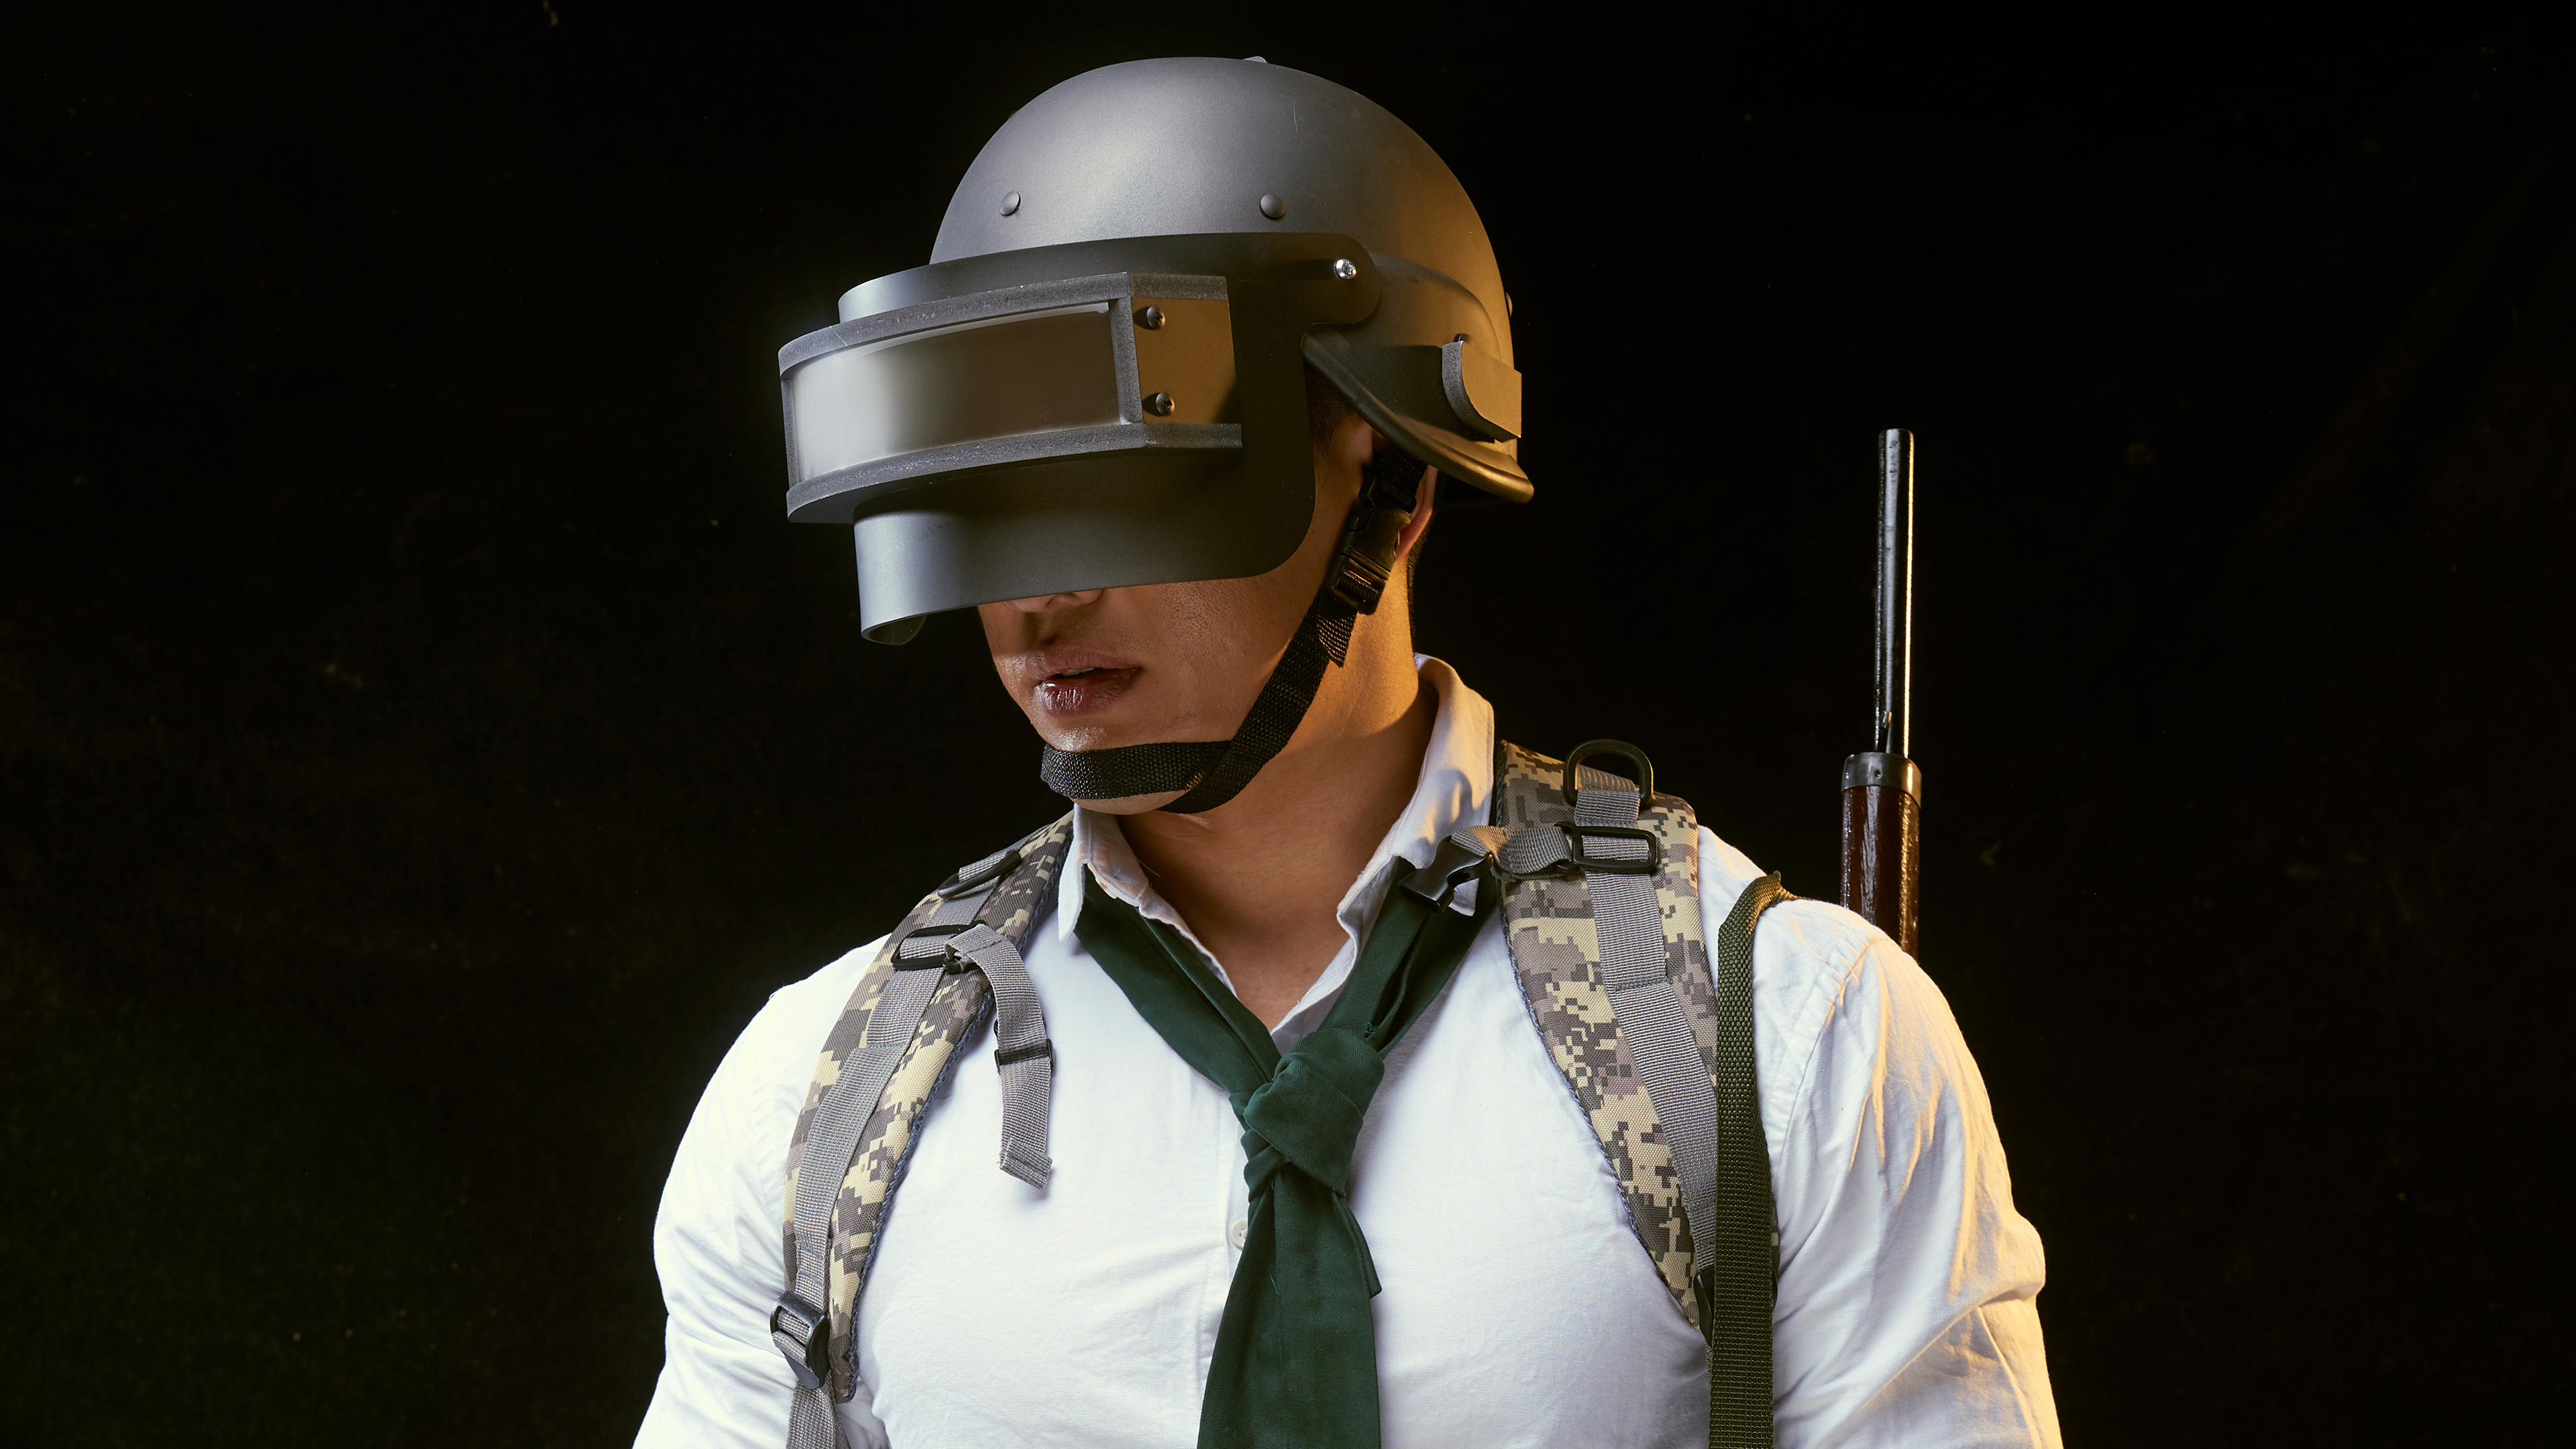 pubg helmet guy cosplay 4k 1554244335 - Pubg Helmet Guy Cosplay 4k - pubg wallpapers, playerunknowns battlegrounds wallpapers, hd-wallpapers, games wallpapers, behance wallpapers2018 games wallpapers, behance wallpapers, 4k-wallpapers